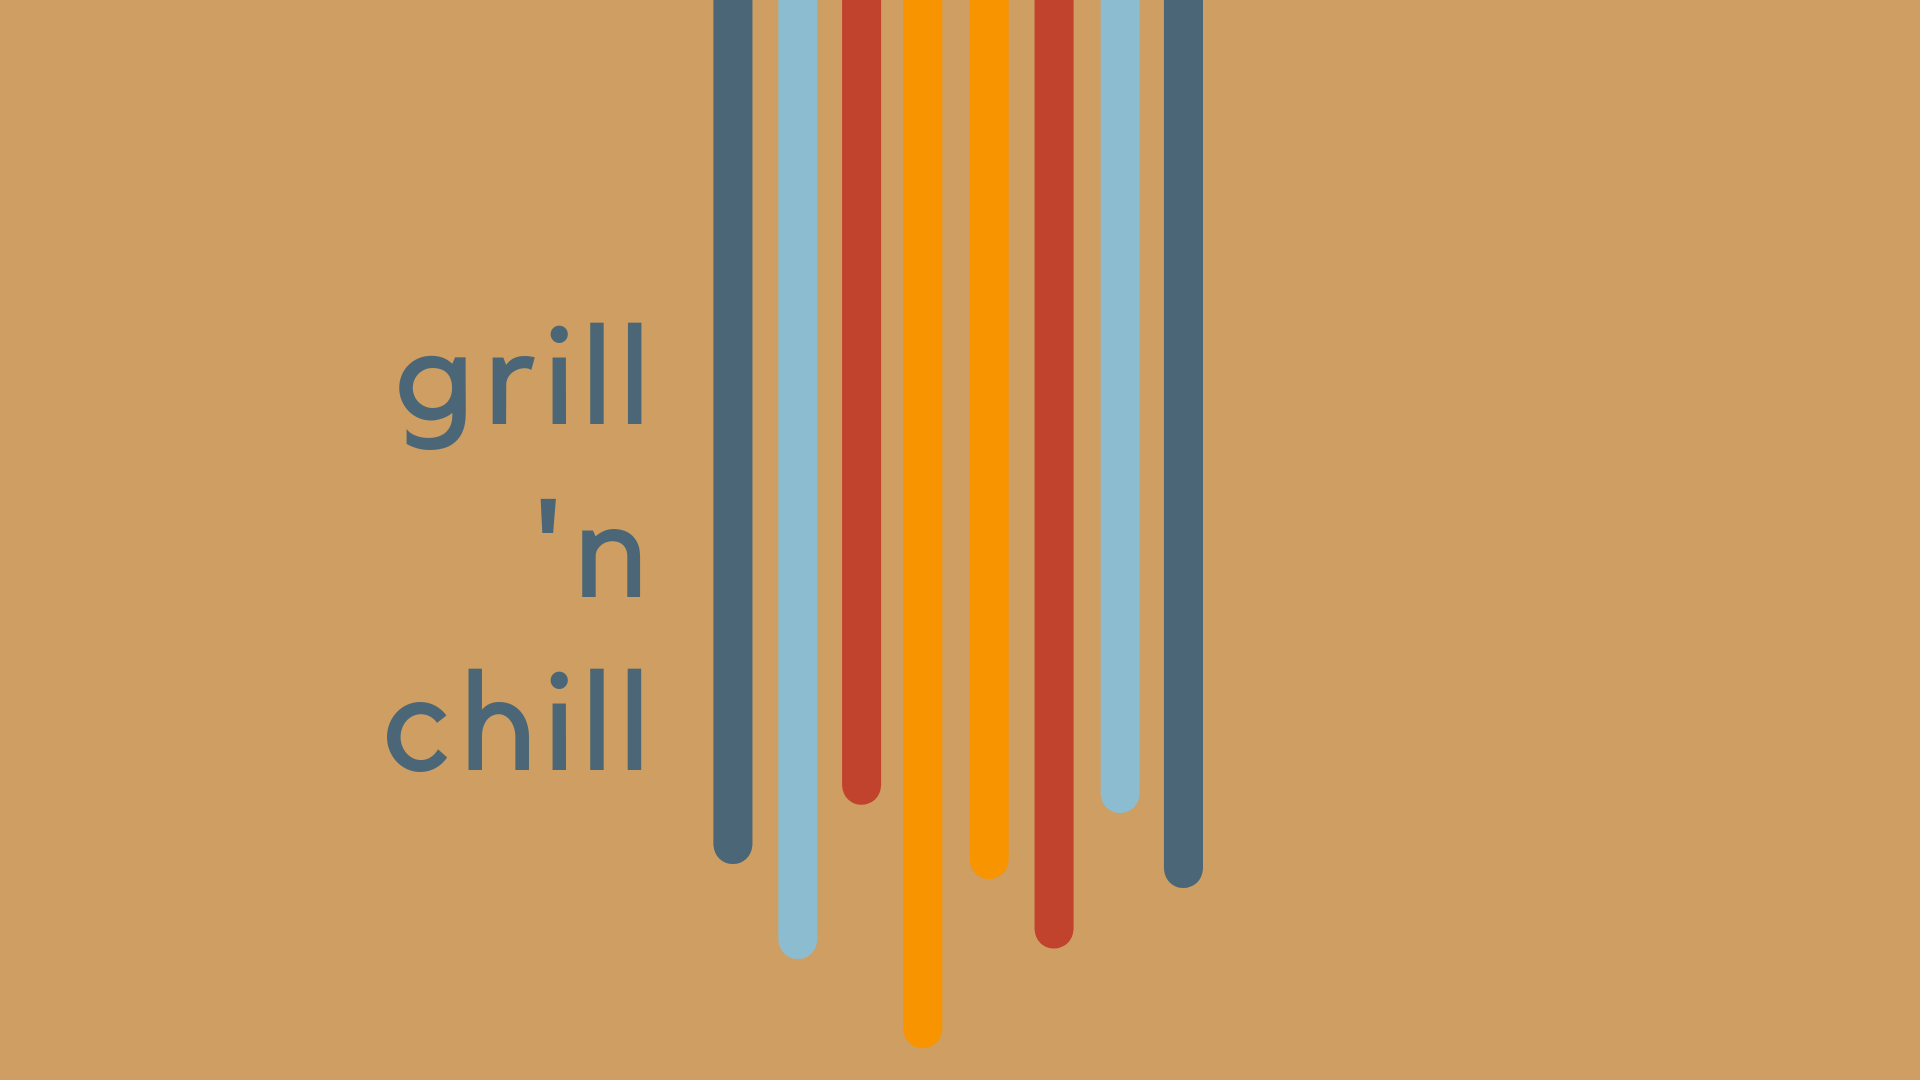 fall_19_-_grillnchill_2.png